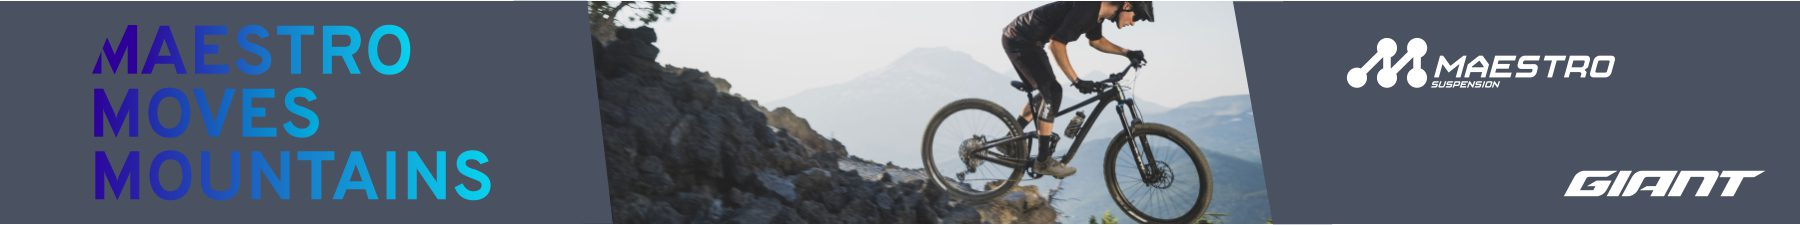 Giant Bicycles ad 1